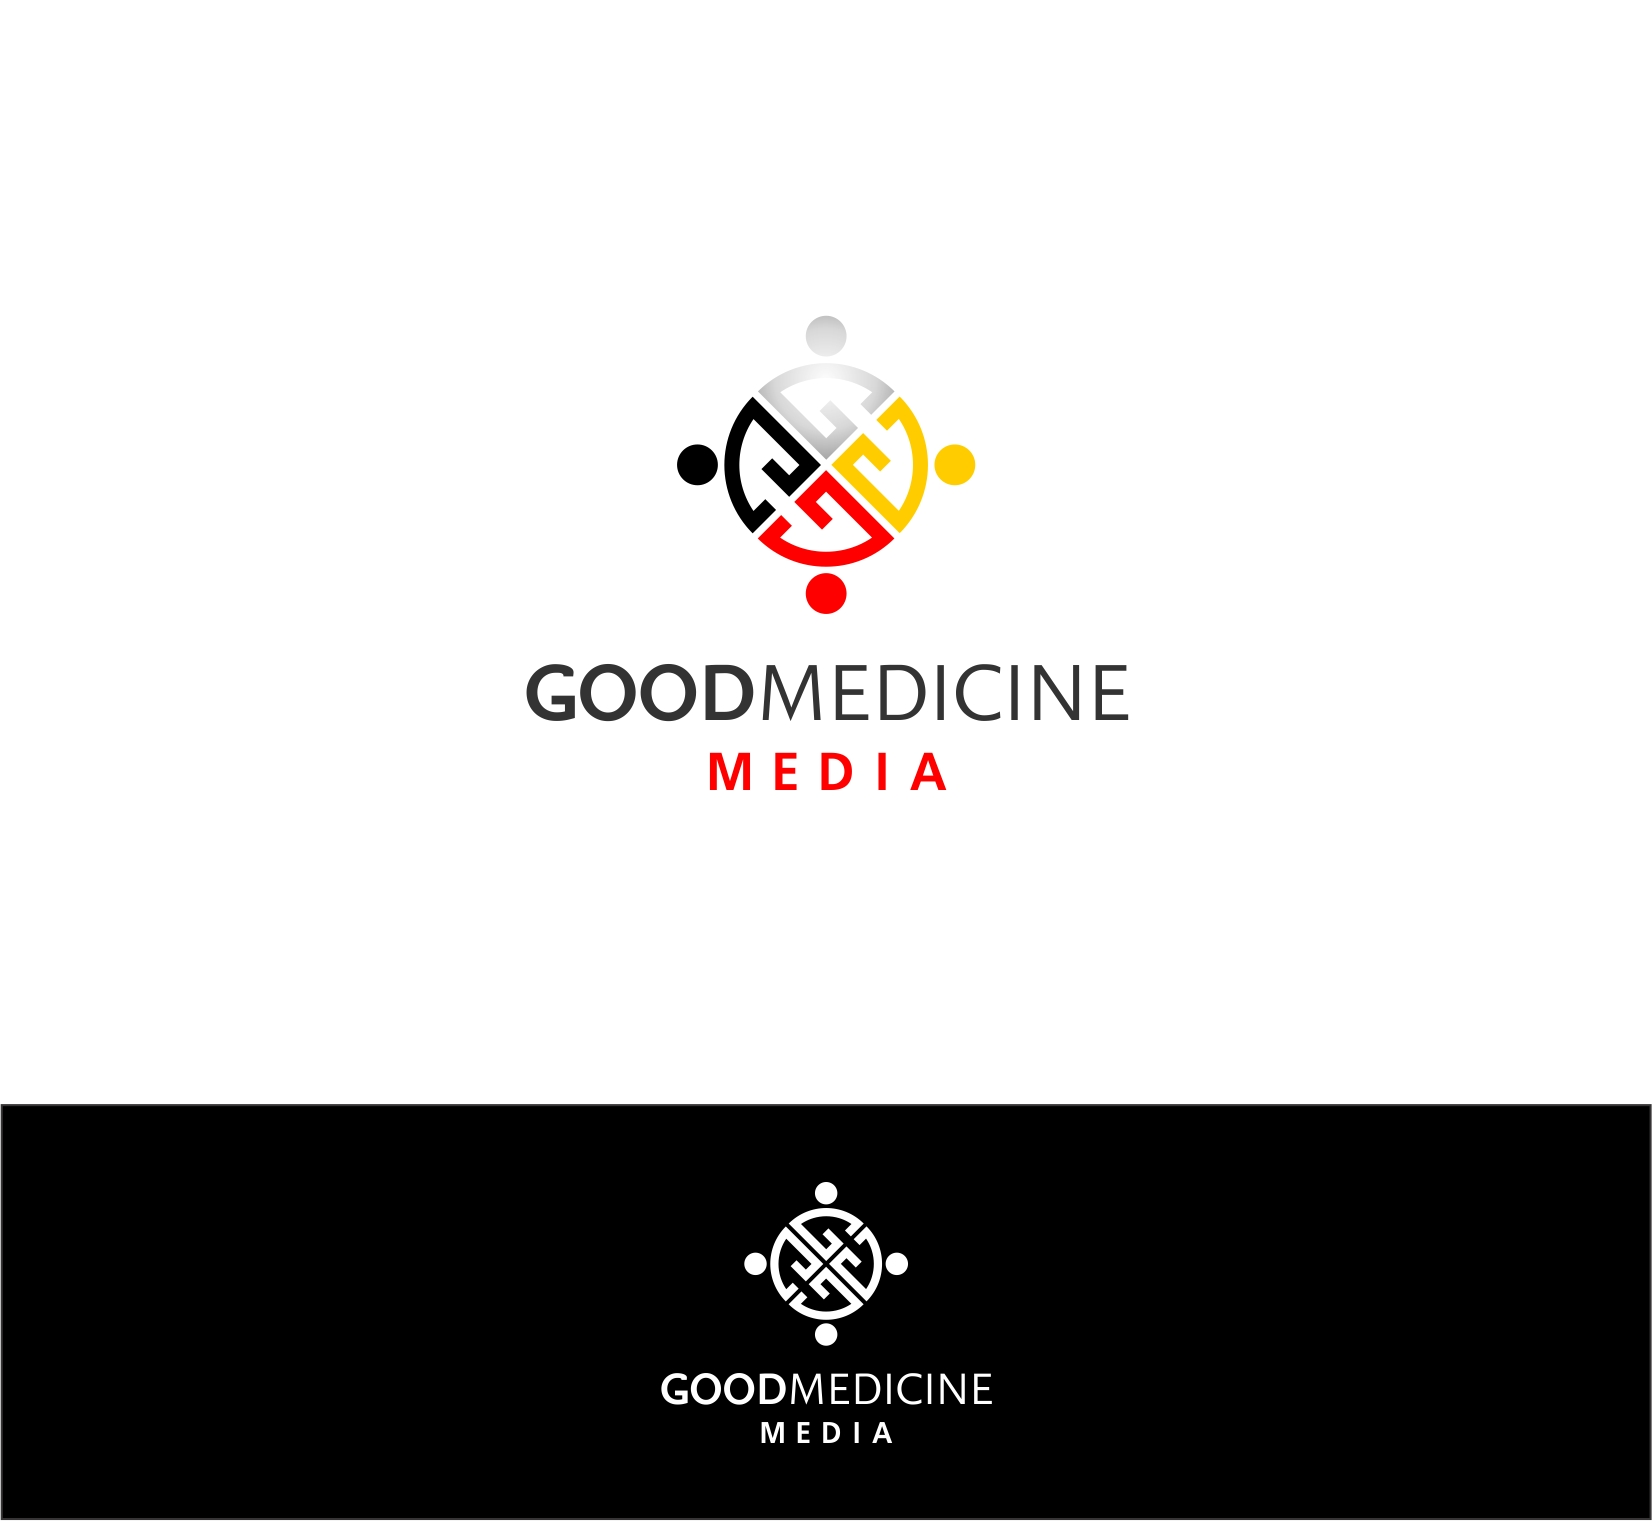 Logo Design by haidu - Entry No. 204 in the Logo Design Contest Good Medicine Media Logo Design.